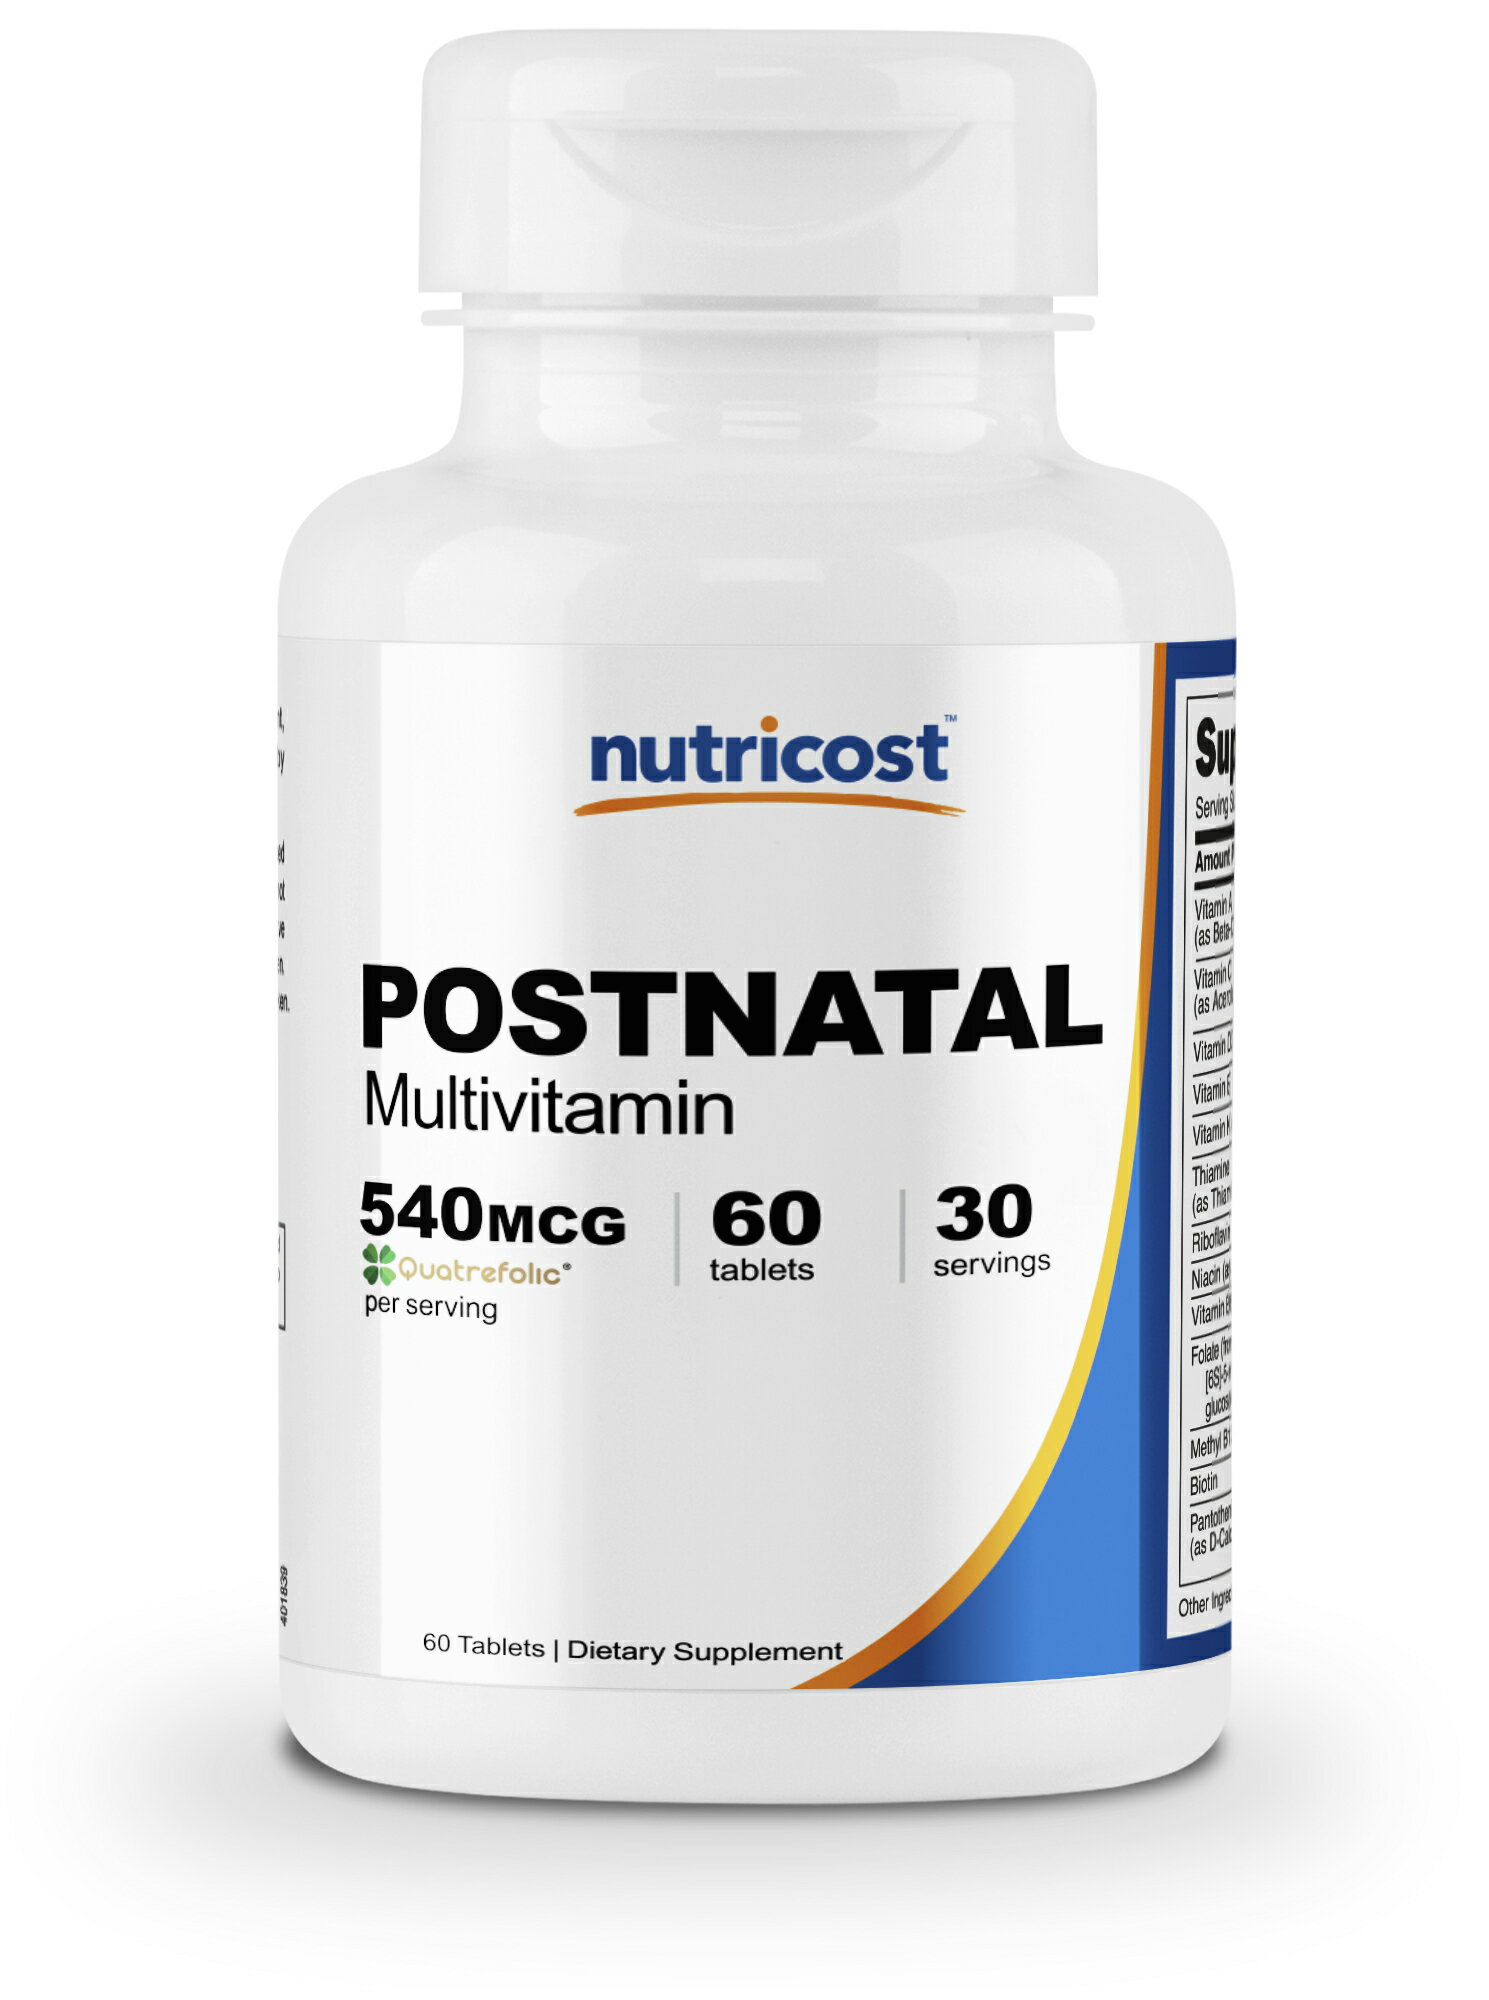 Nutricost Postnatal Multivitamin (60 Tablets) - Supports Healthy Muscles,  Bones, Growth, and Development